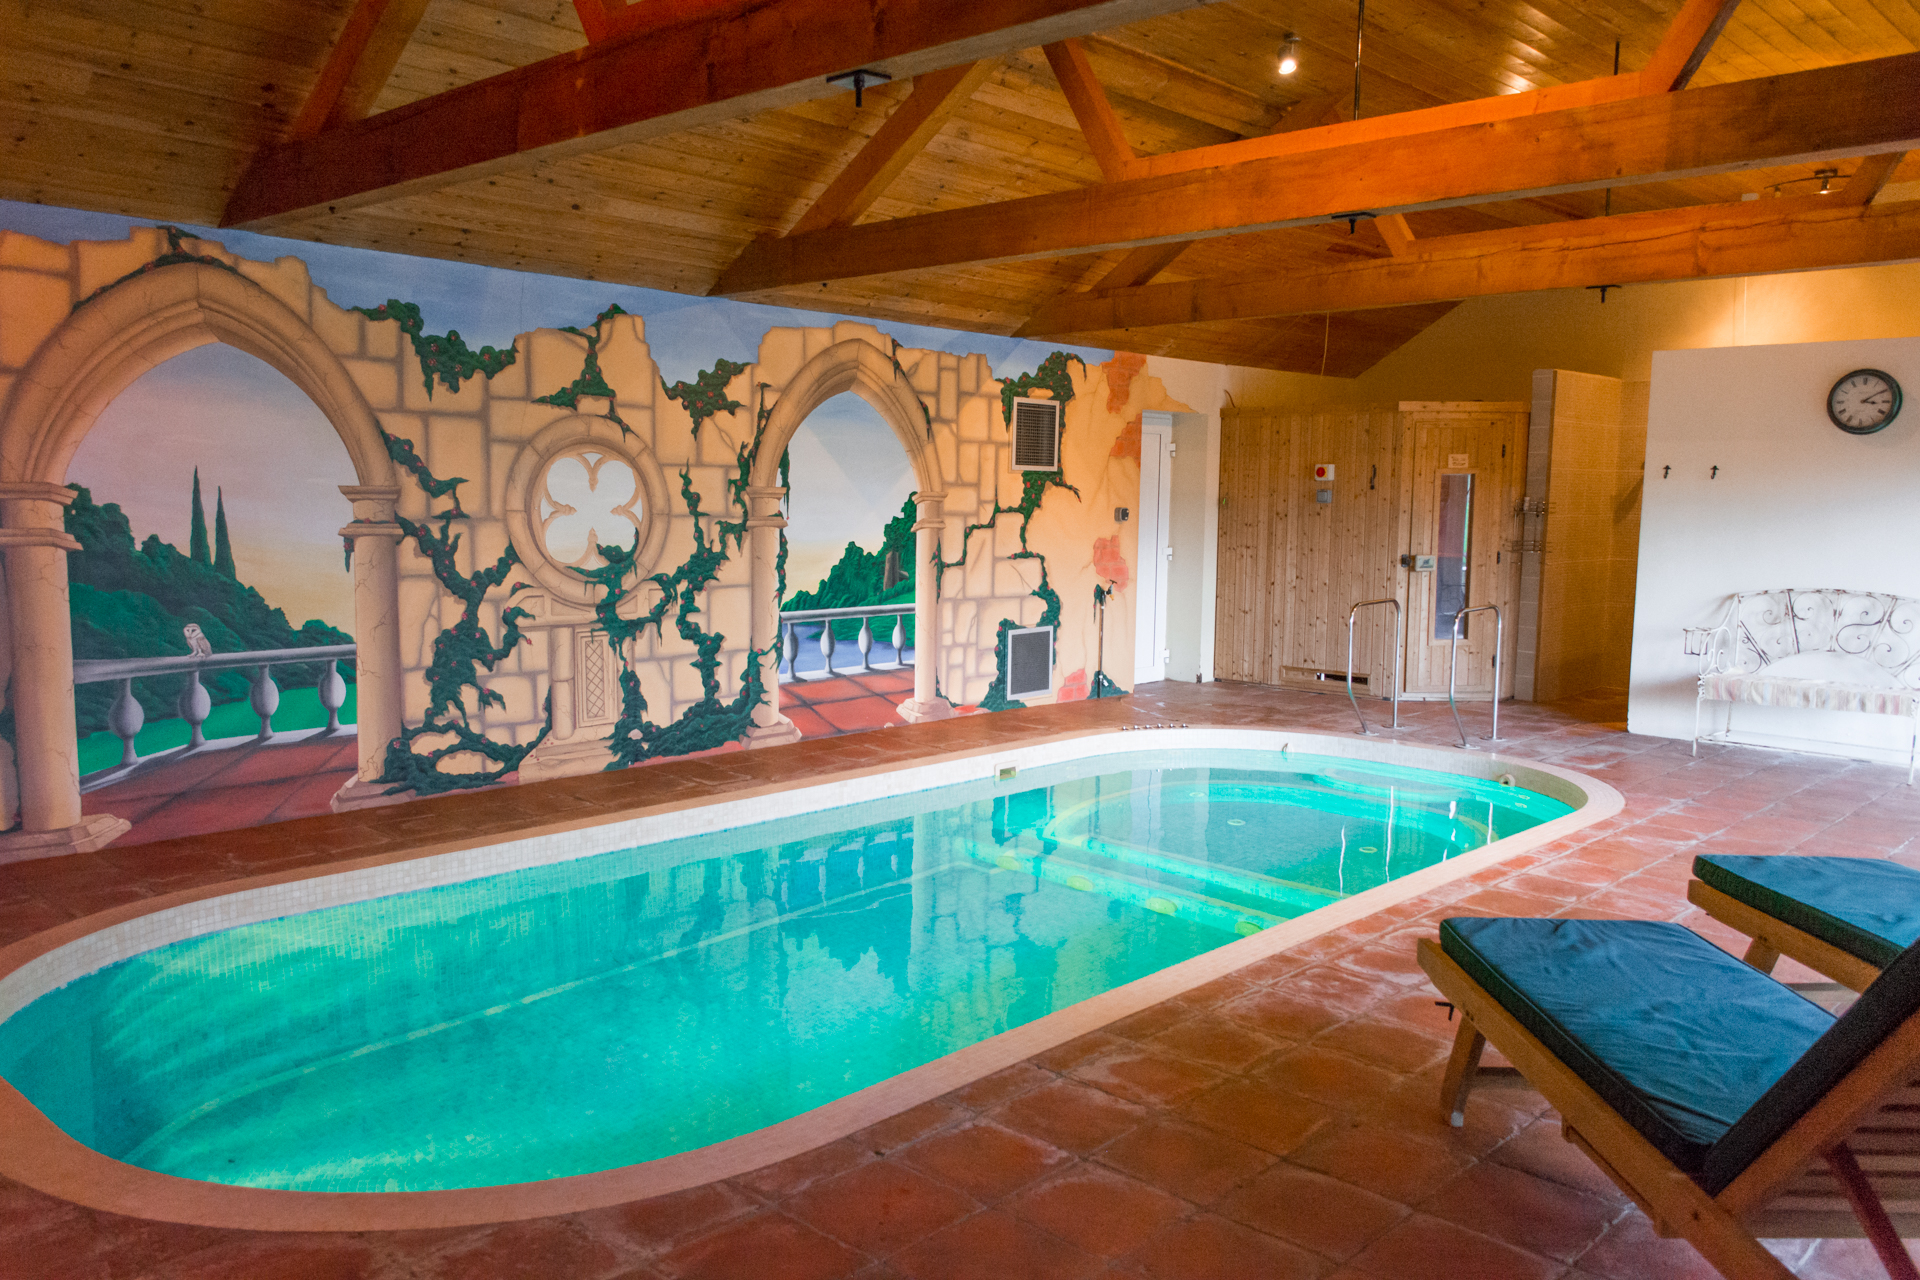 Luxury Holiday Home With Indoor Pool Sauna Gym Houses For Rent In Witton Bridge England United Kingdom